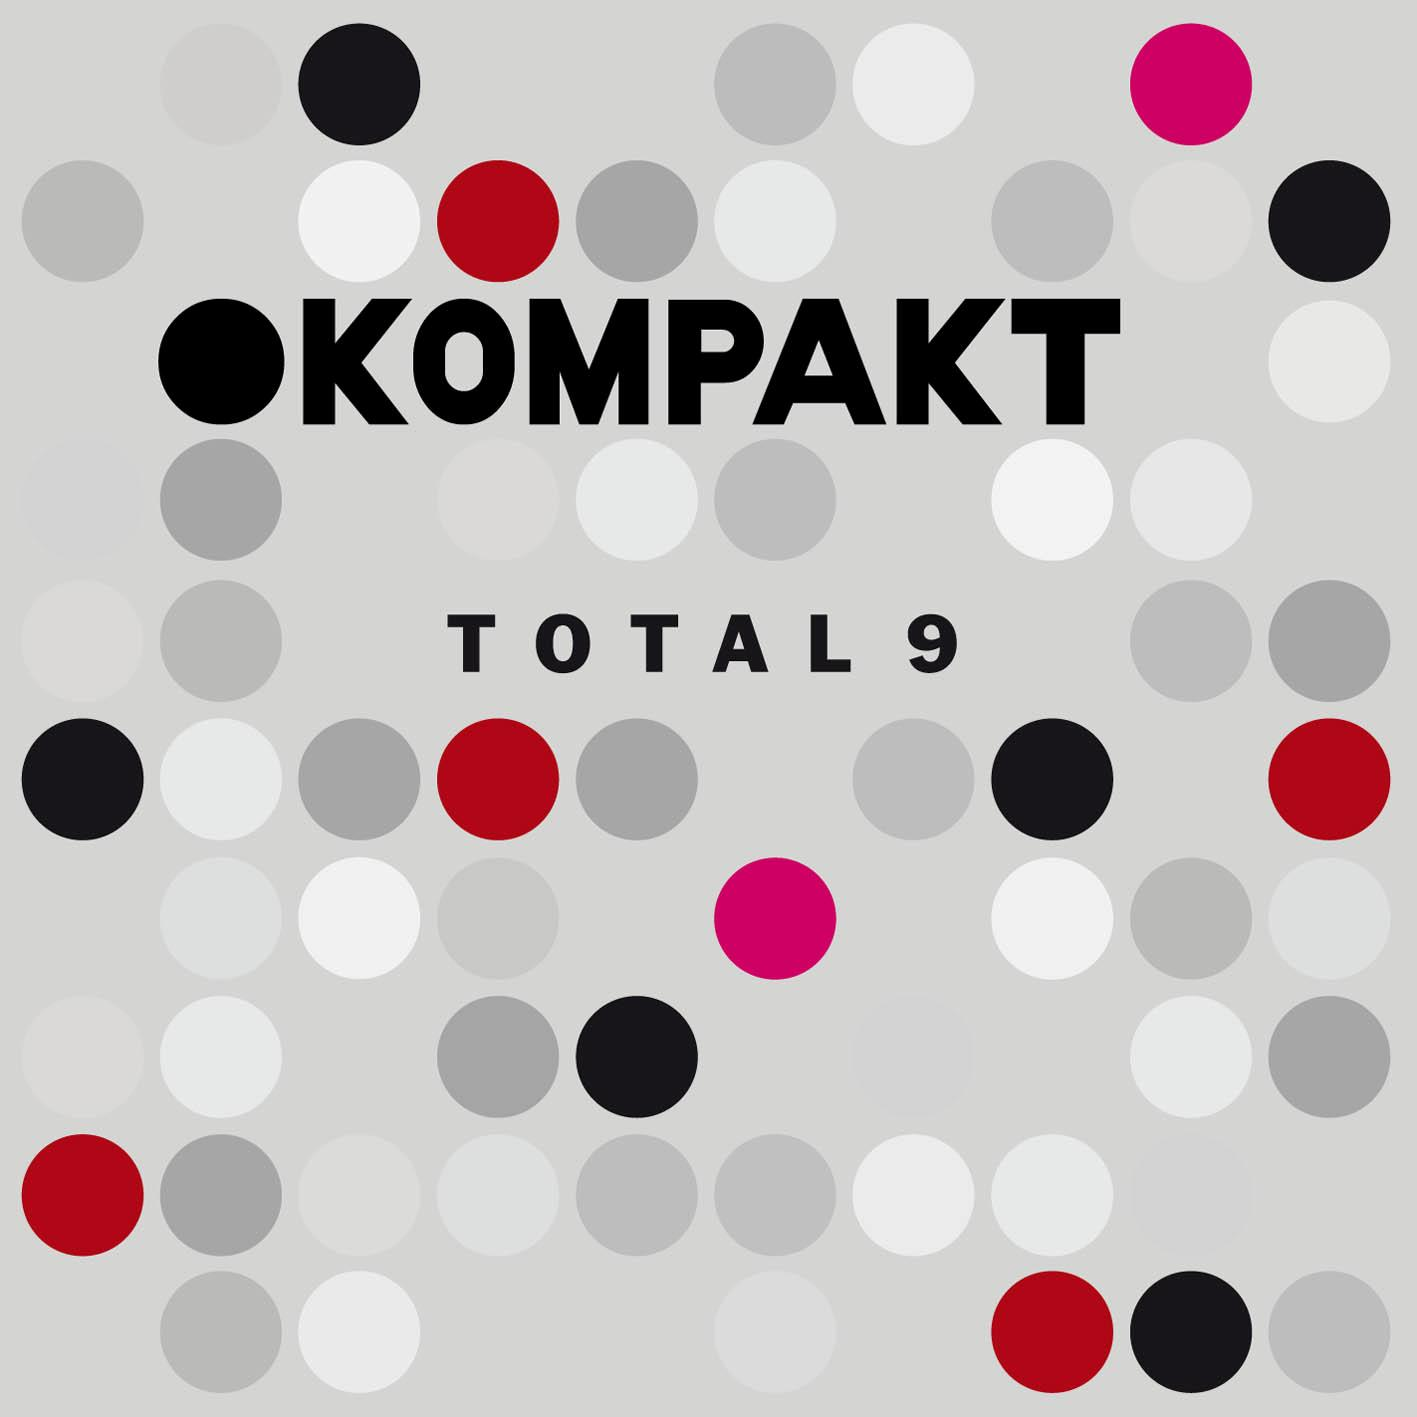 total 9 artwork Kompakt Total 9